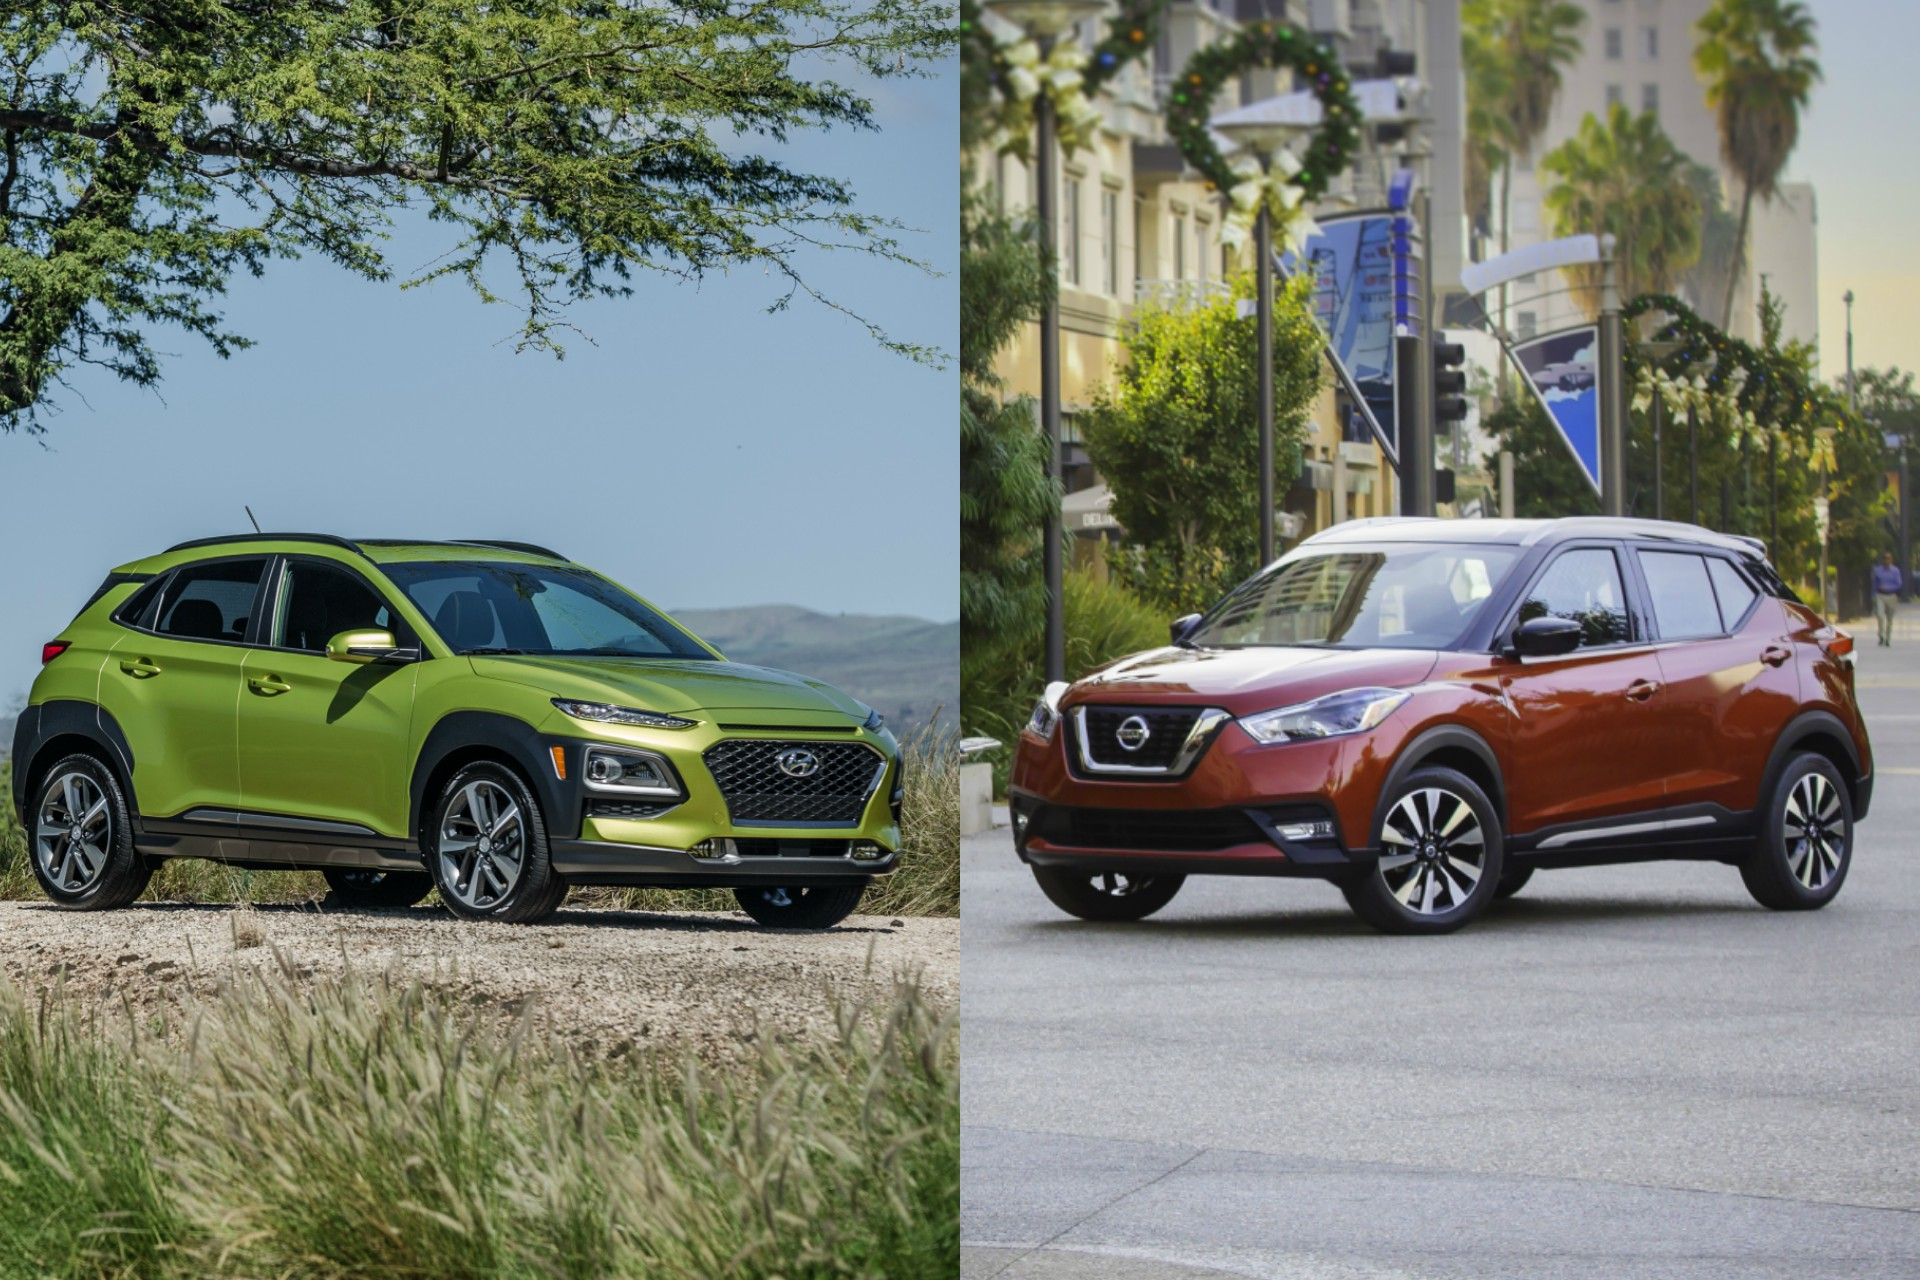 Hyundai Kona, Nissan Kicks: New small crossovers storm the ...